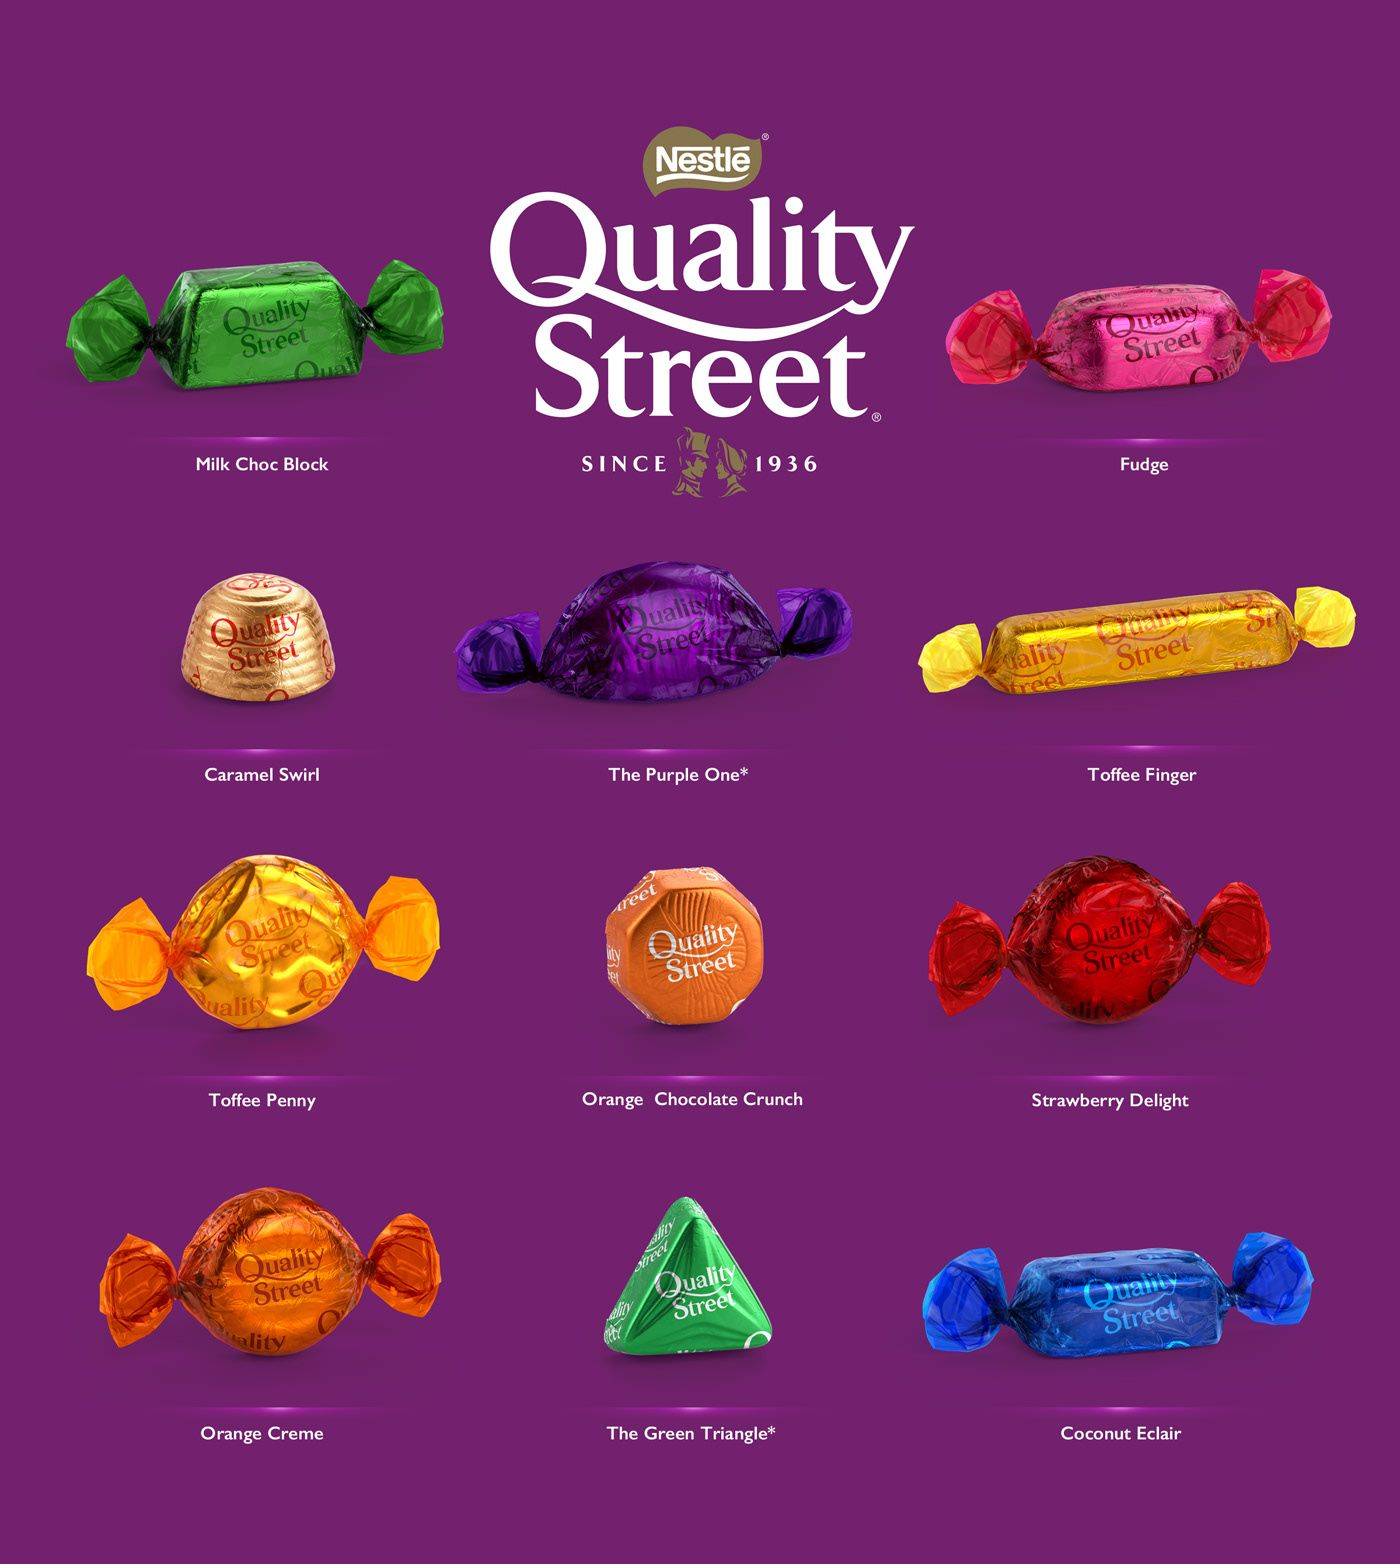 3D Quality Street Chocolates & Toffees - Packaging on Behance | Quality streets chocolates, Quality street, Chocolate toffee